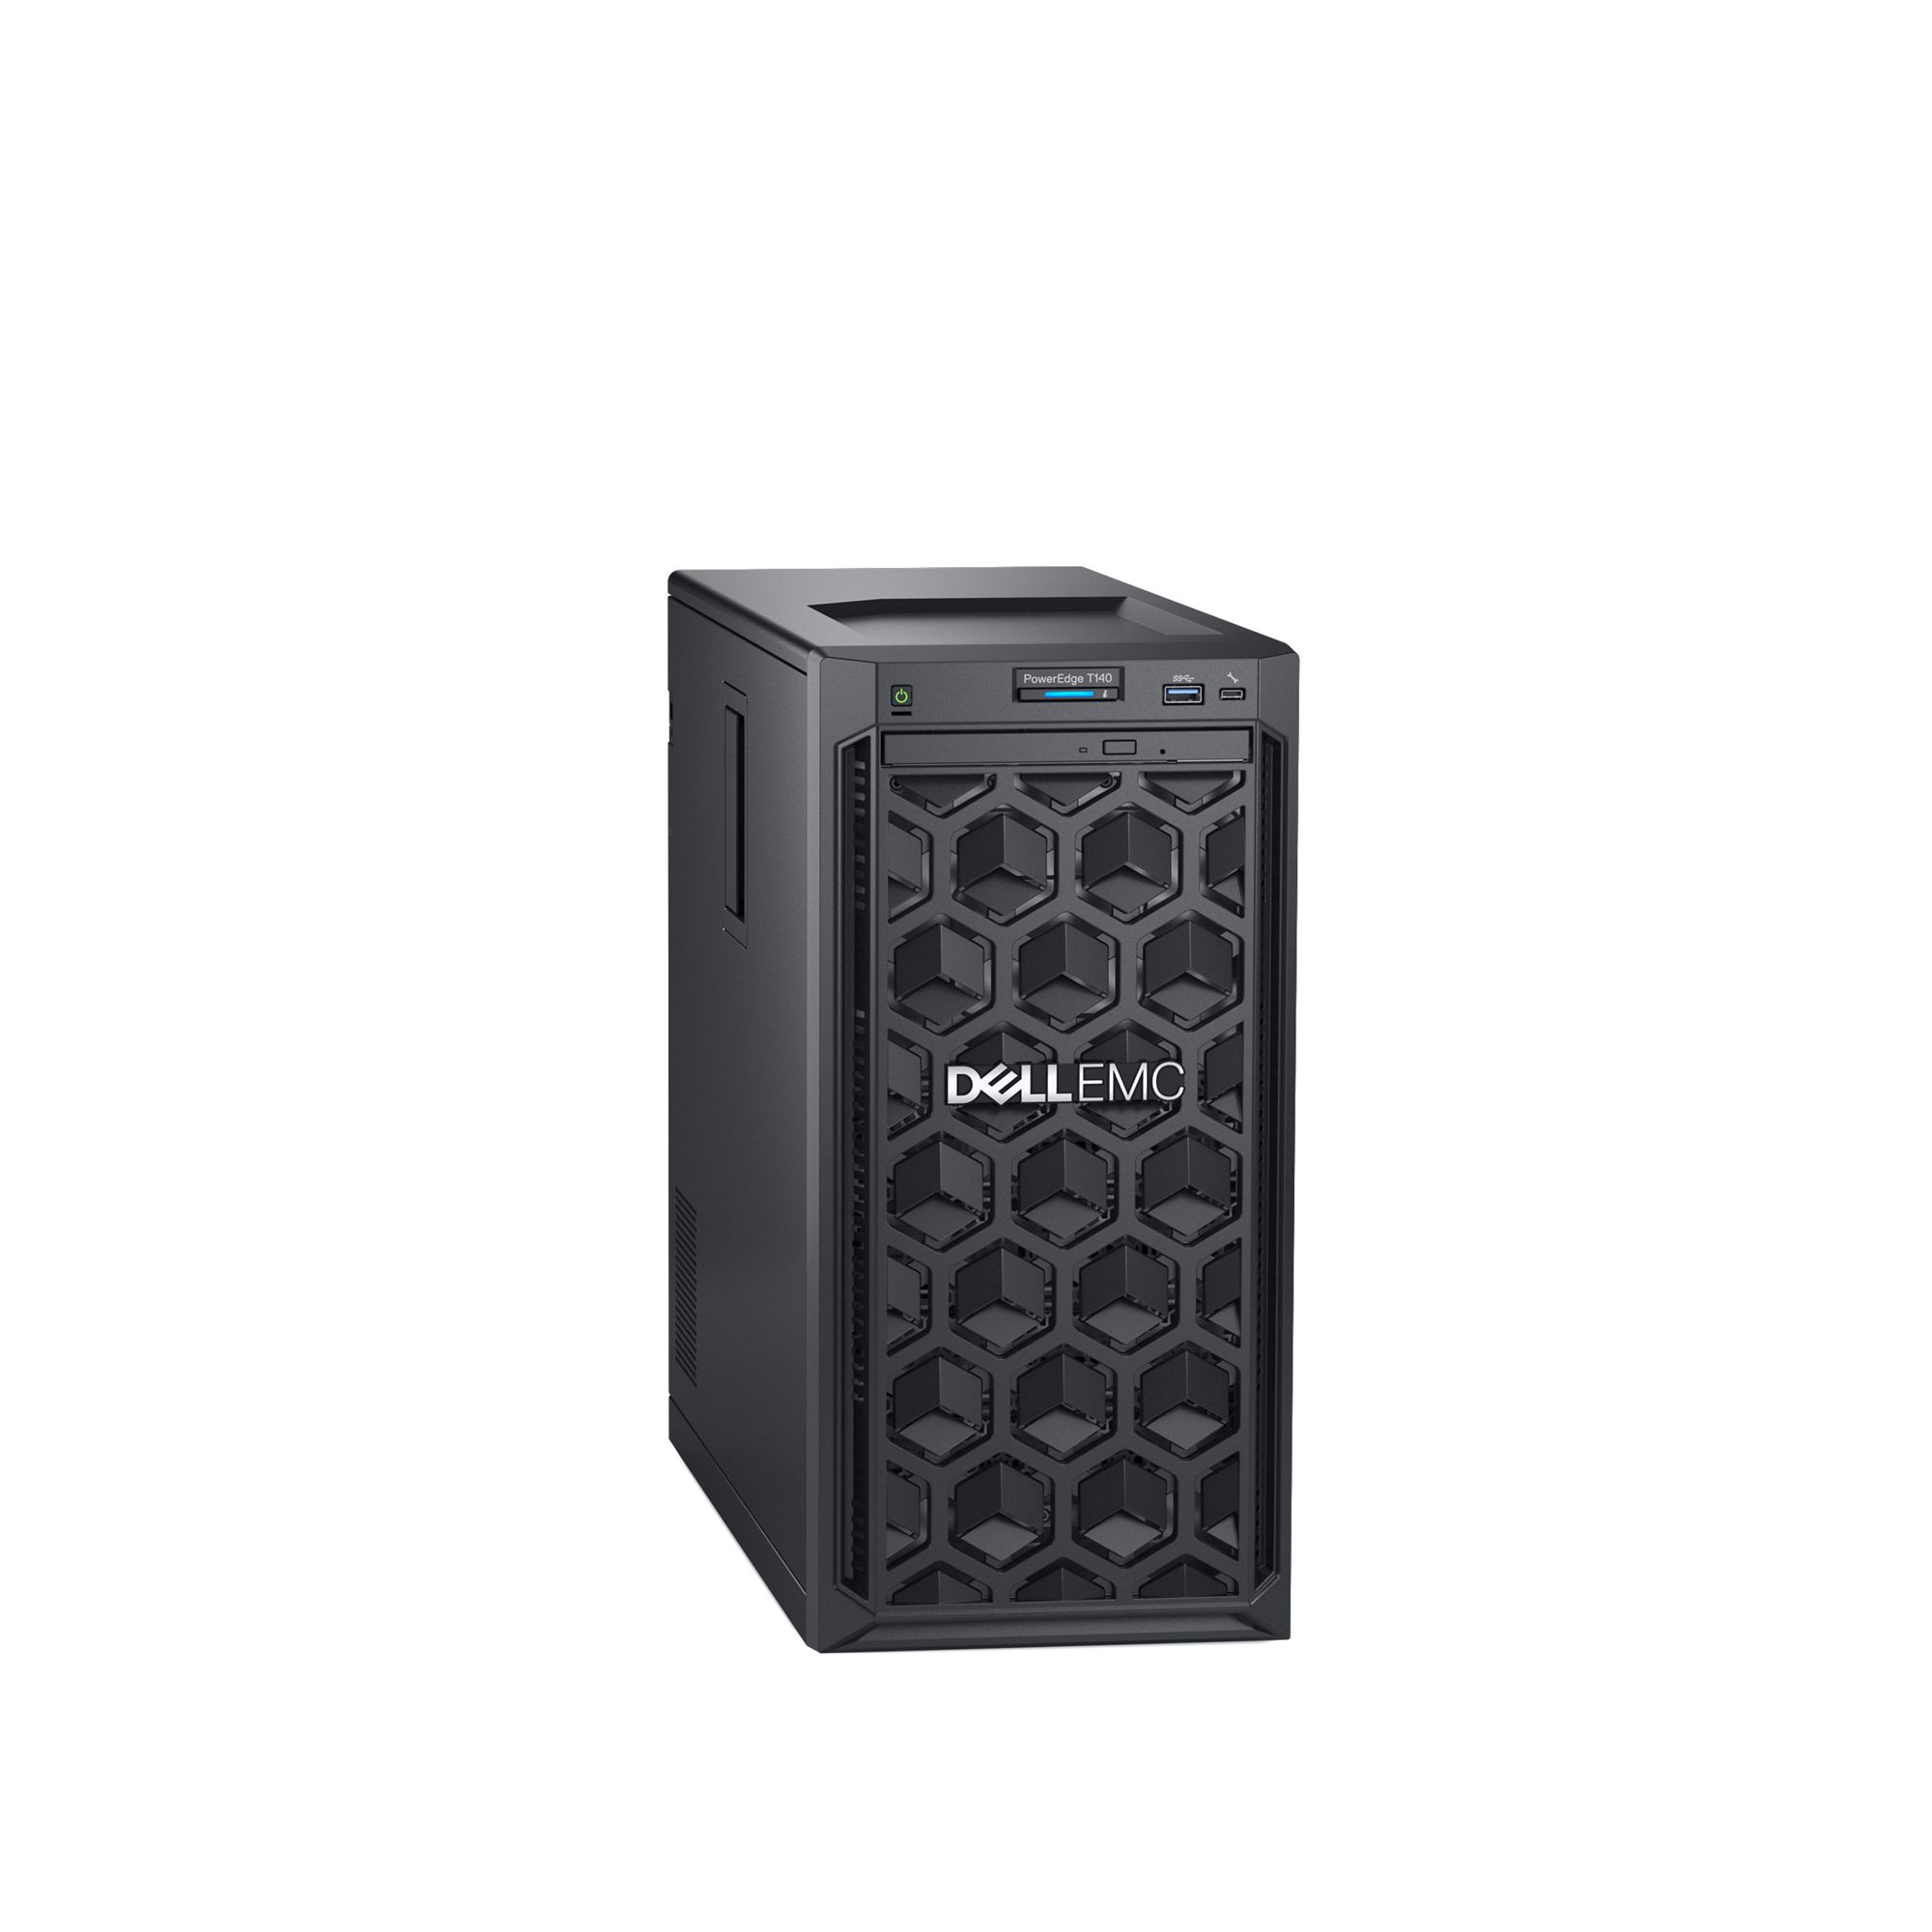 Zestaw serwer DELL PowerEdge T140 Xeon E-2234 16GB 1TB SATA H330 + Windows Server 2019 Standard + 2x 5 CAL user